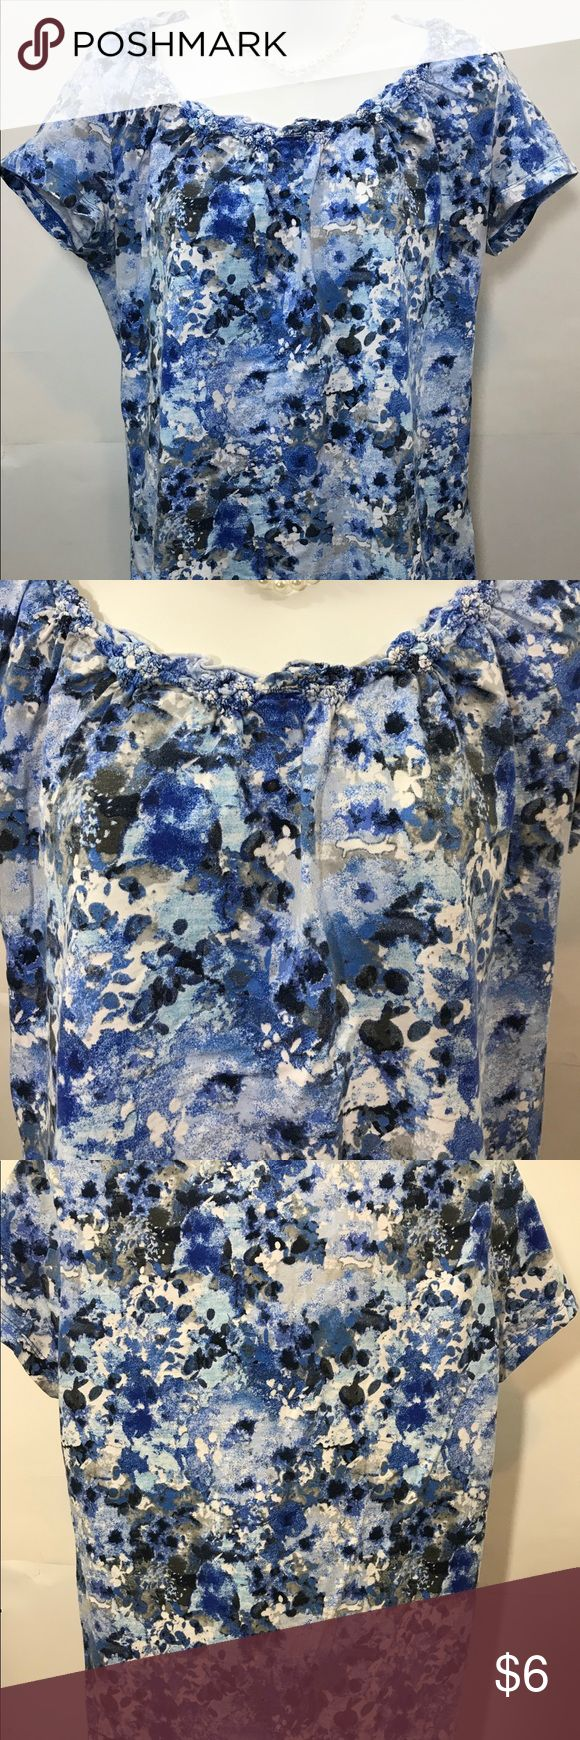 """St Johns Bay Women's Pullover Top Size Large St Johns Bay Women's Pullover Top Size Large  Paisley look  Blue and white color  Measurements are approximately and laying flat, nothing doubled  Armpit to armpit 21""""  Length from top back to bottom of shirt 24""""  necklace not included   B1 Tops Blouses"""